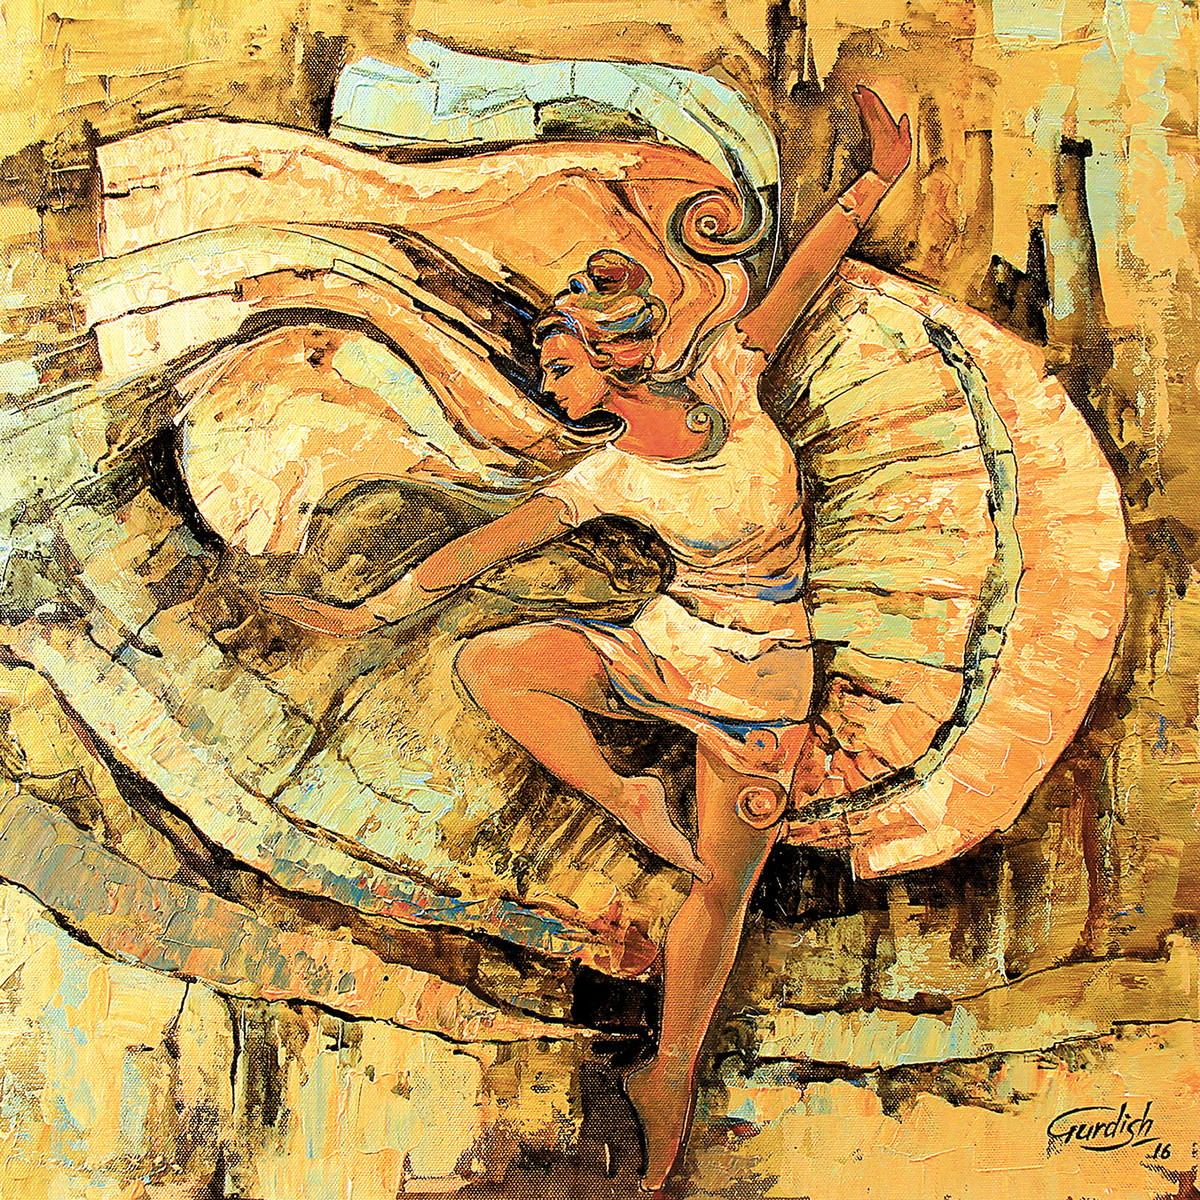 Hostel life(The dance -sensibility or a loving heart ) by gurdish pannu, Expressionism Painting, Acrylic on Canvas, Brown color